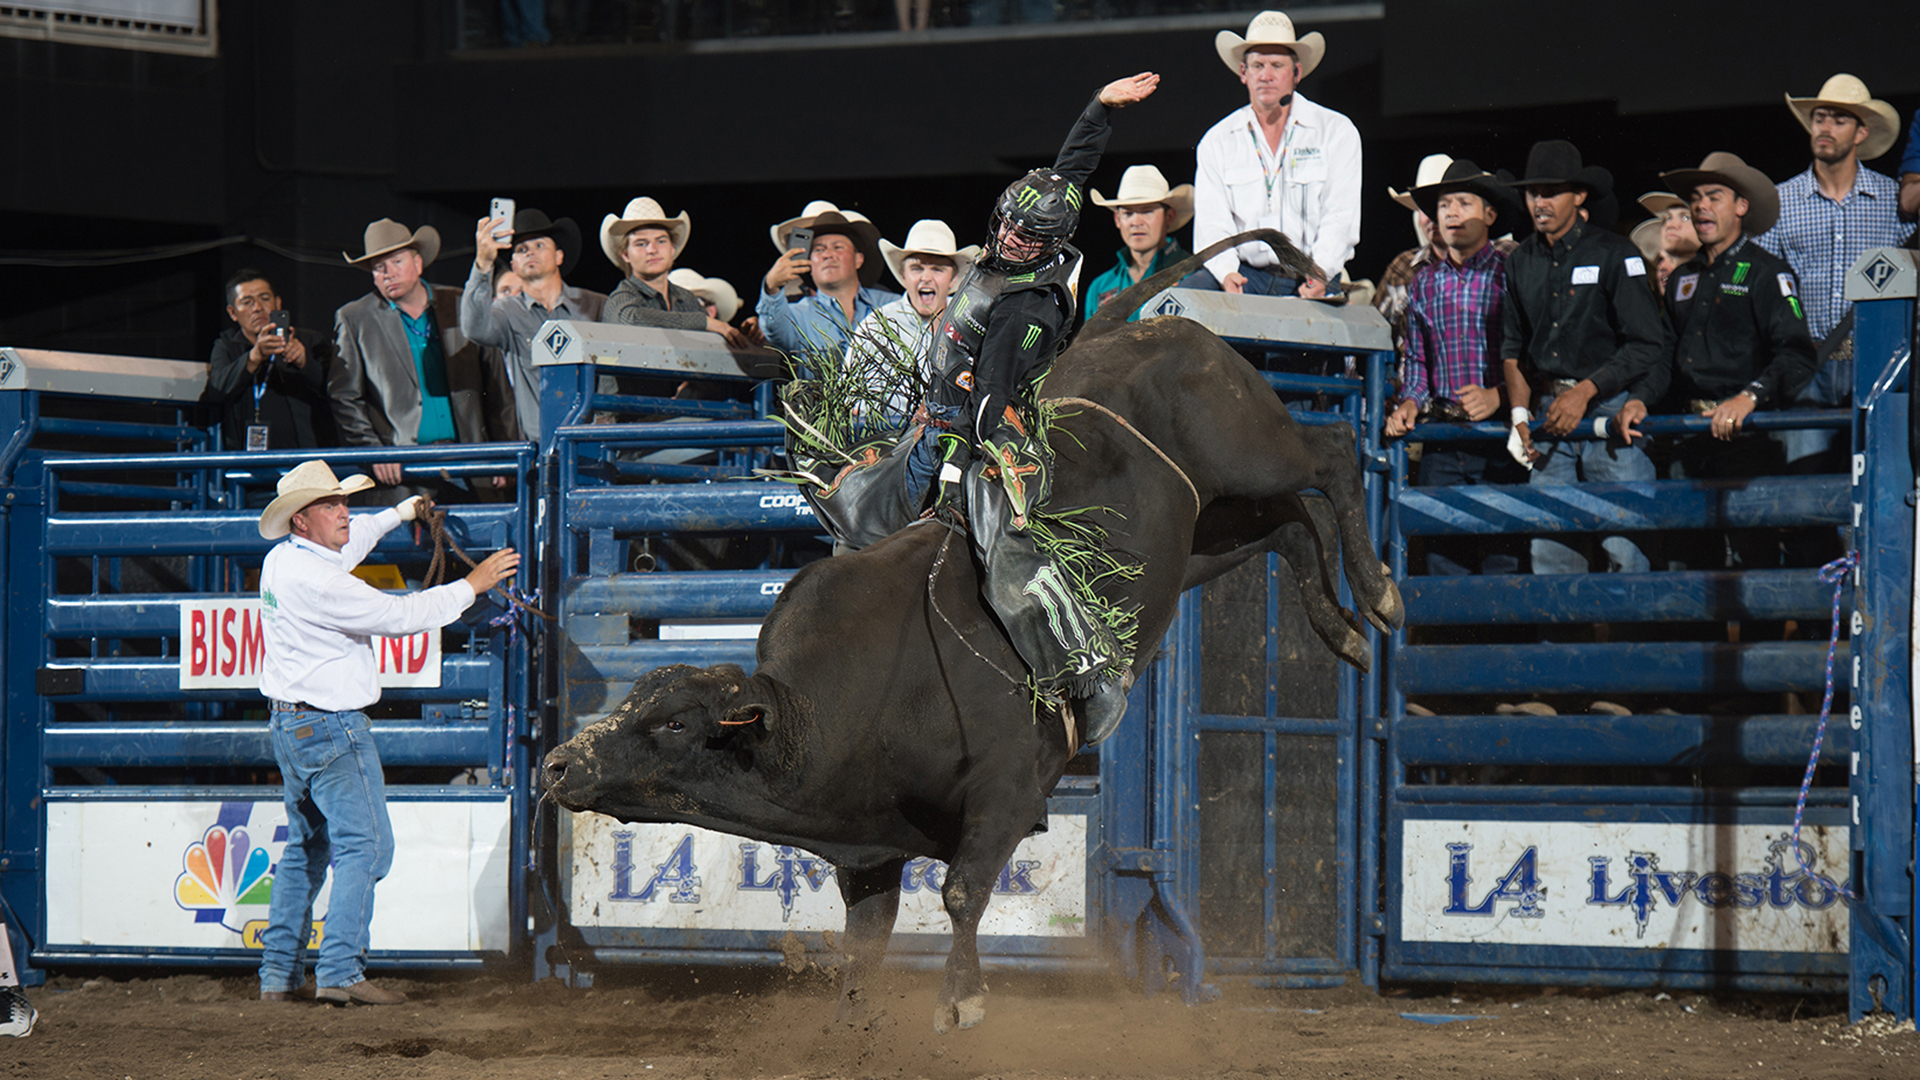 In Bismarck, 2019 World Champion contenders show the sky is the limit in race to World Finals